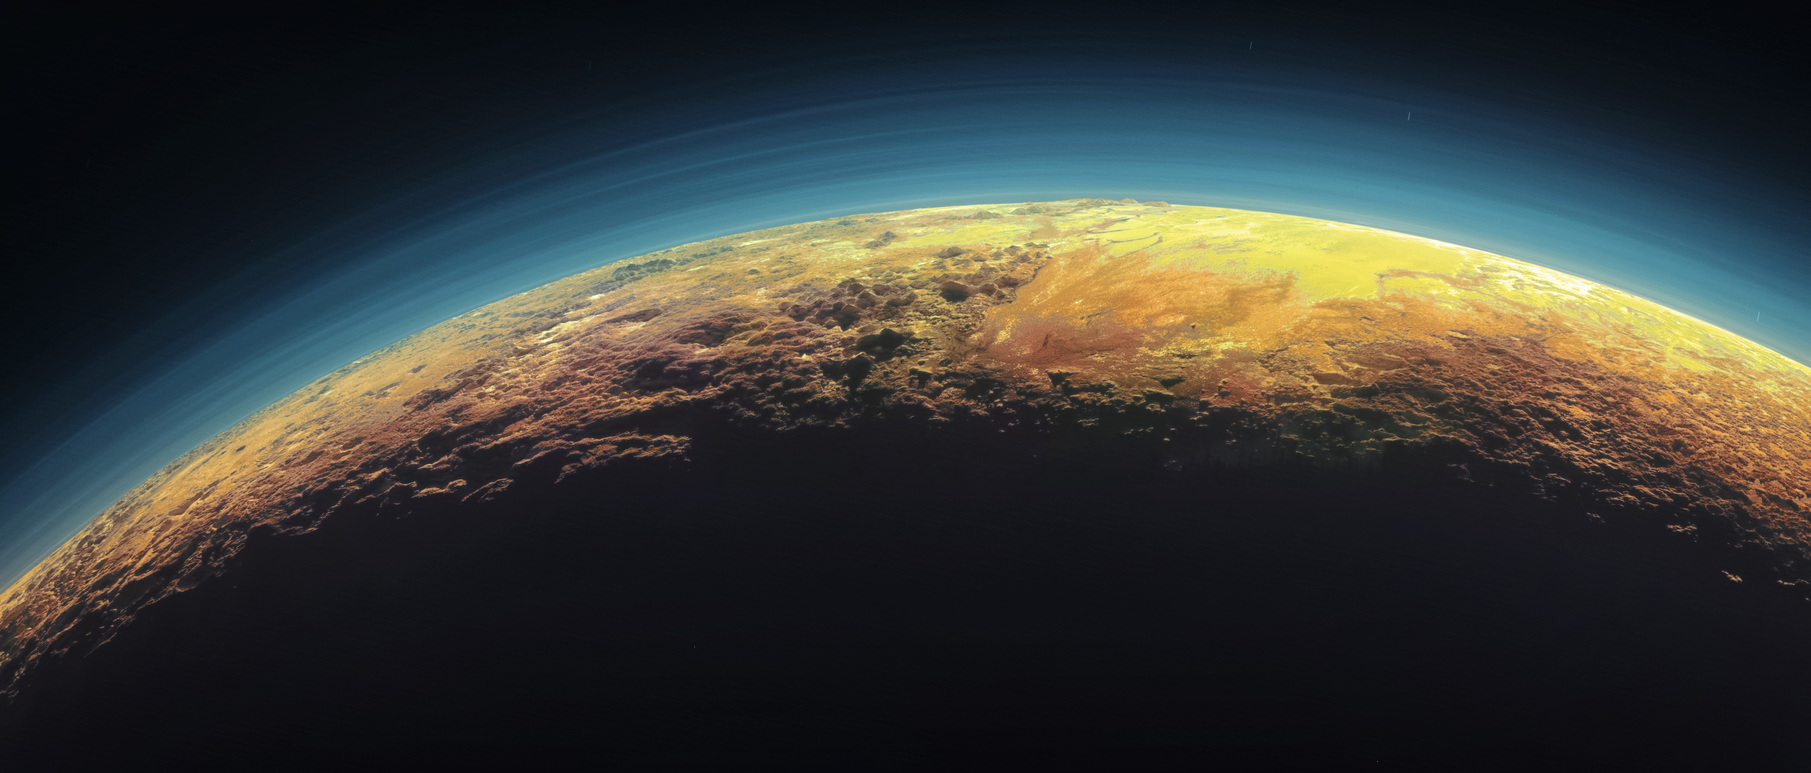 Pluto's haze is a photochemical smog. - Image Credit: NASA/Johns Hopkins University Applied Physics Laboratory/Southwest Research Institute,  CC BY